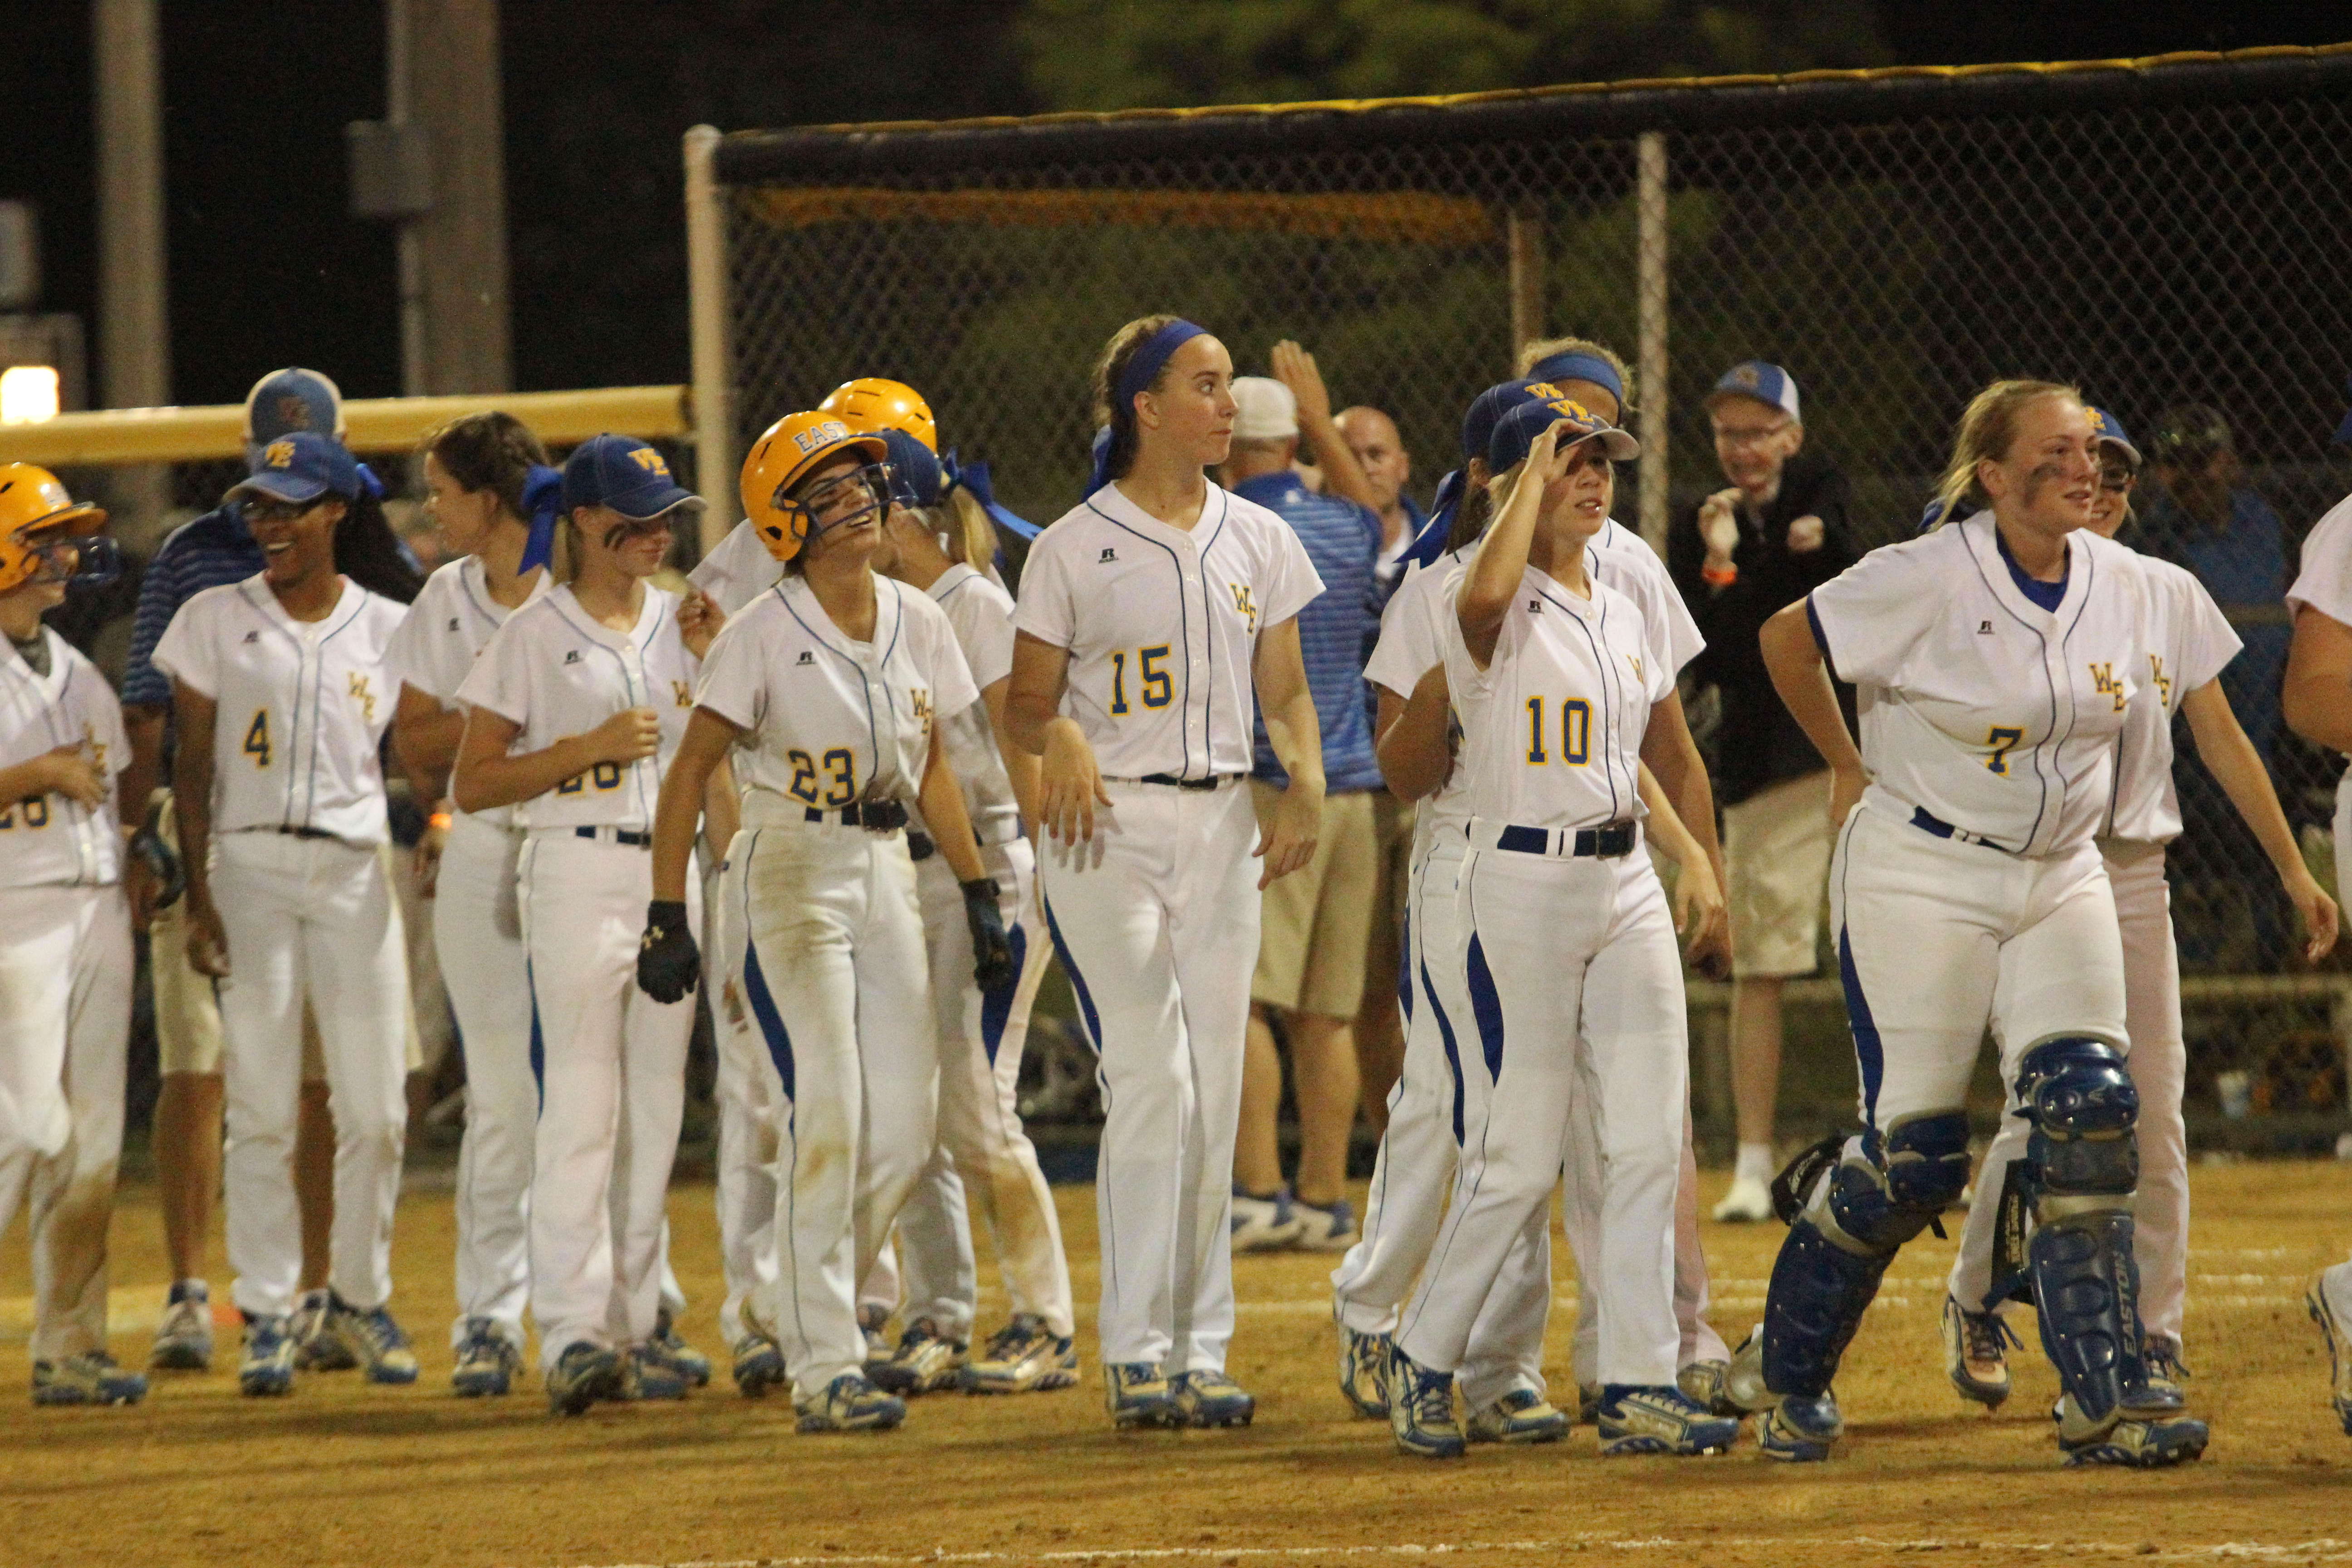 Warren East in state softball tournament